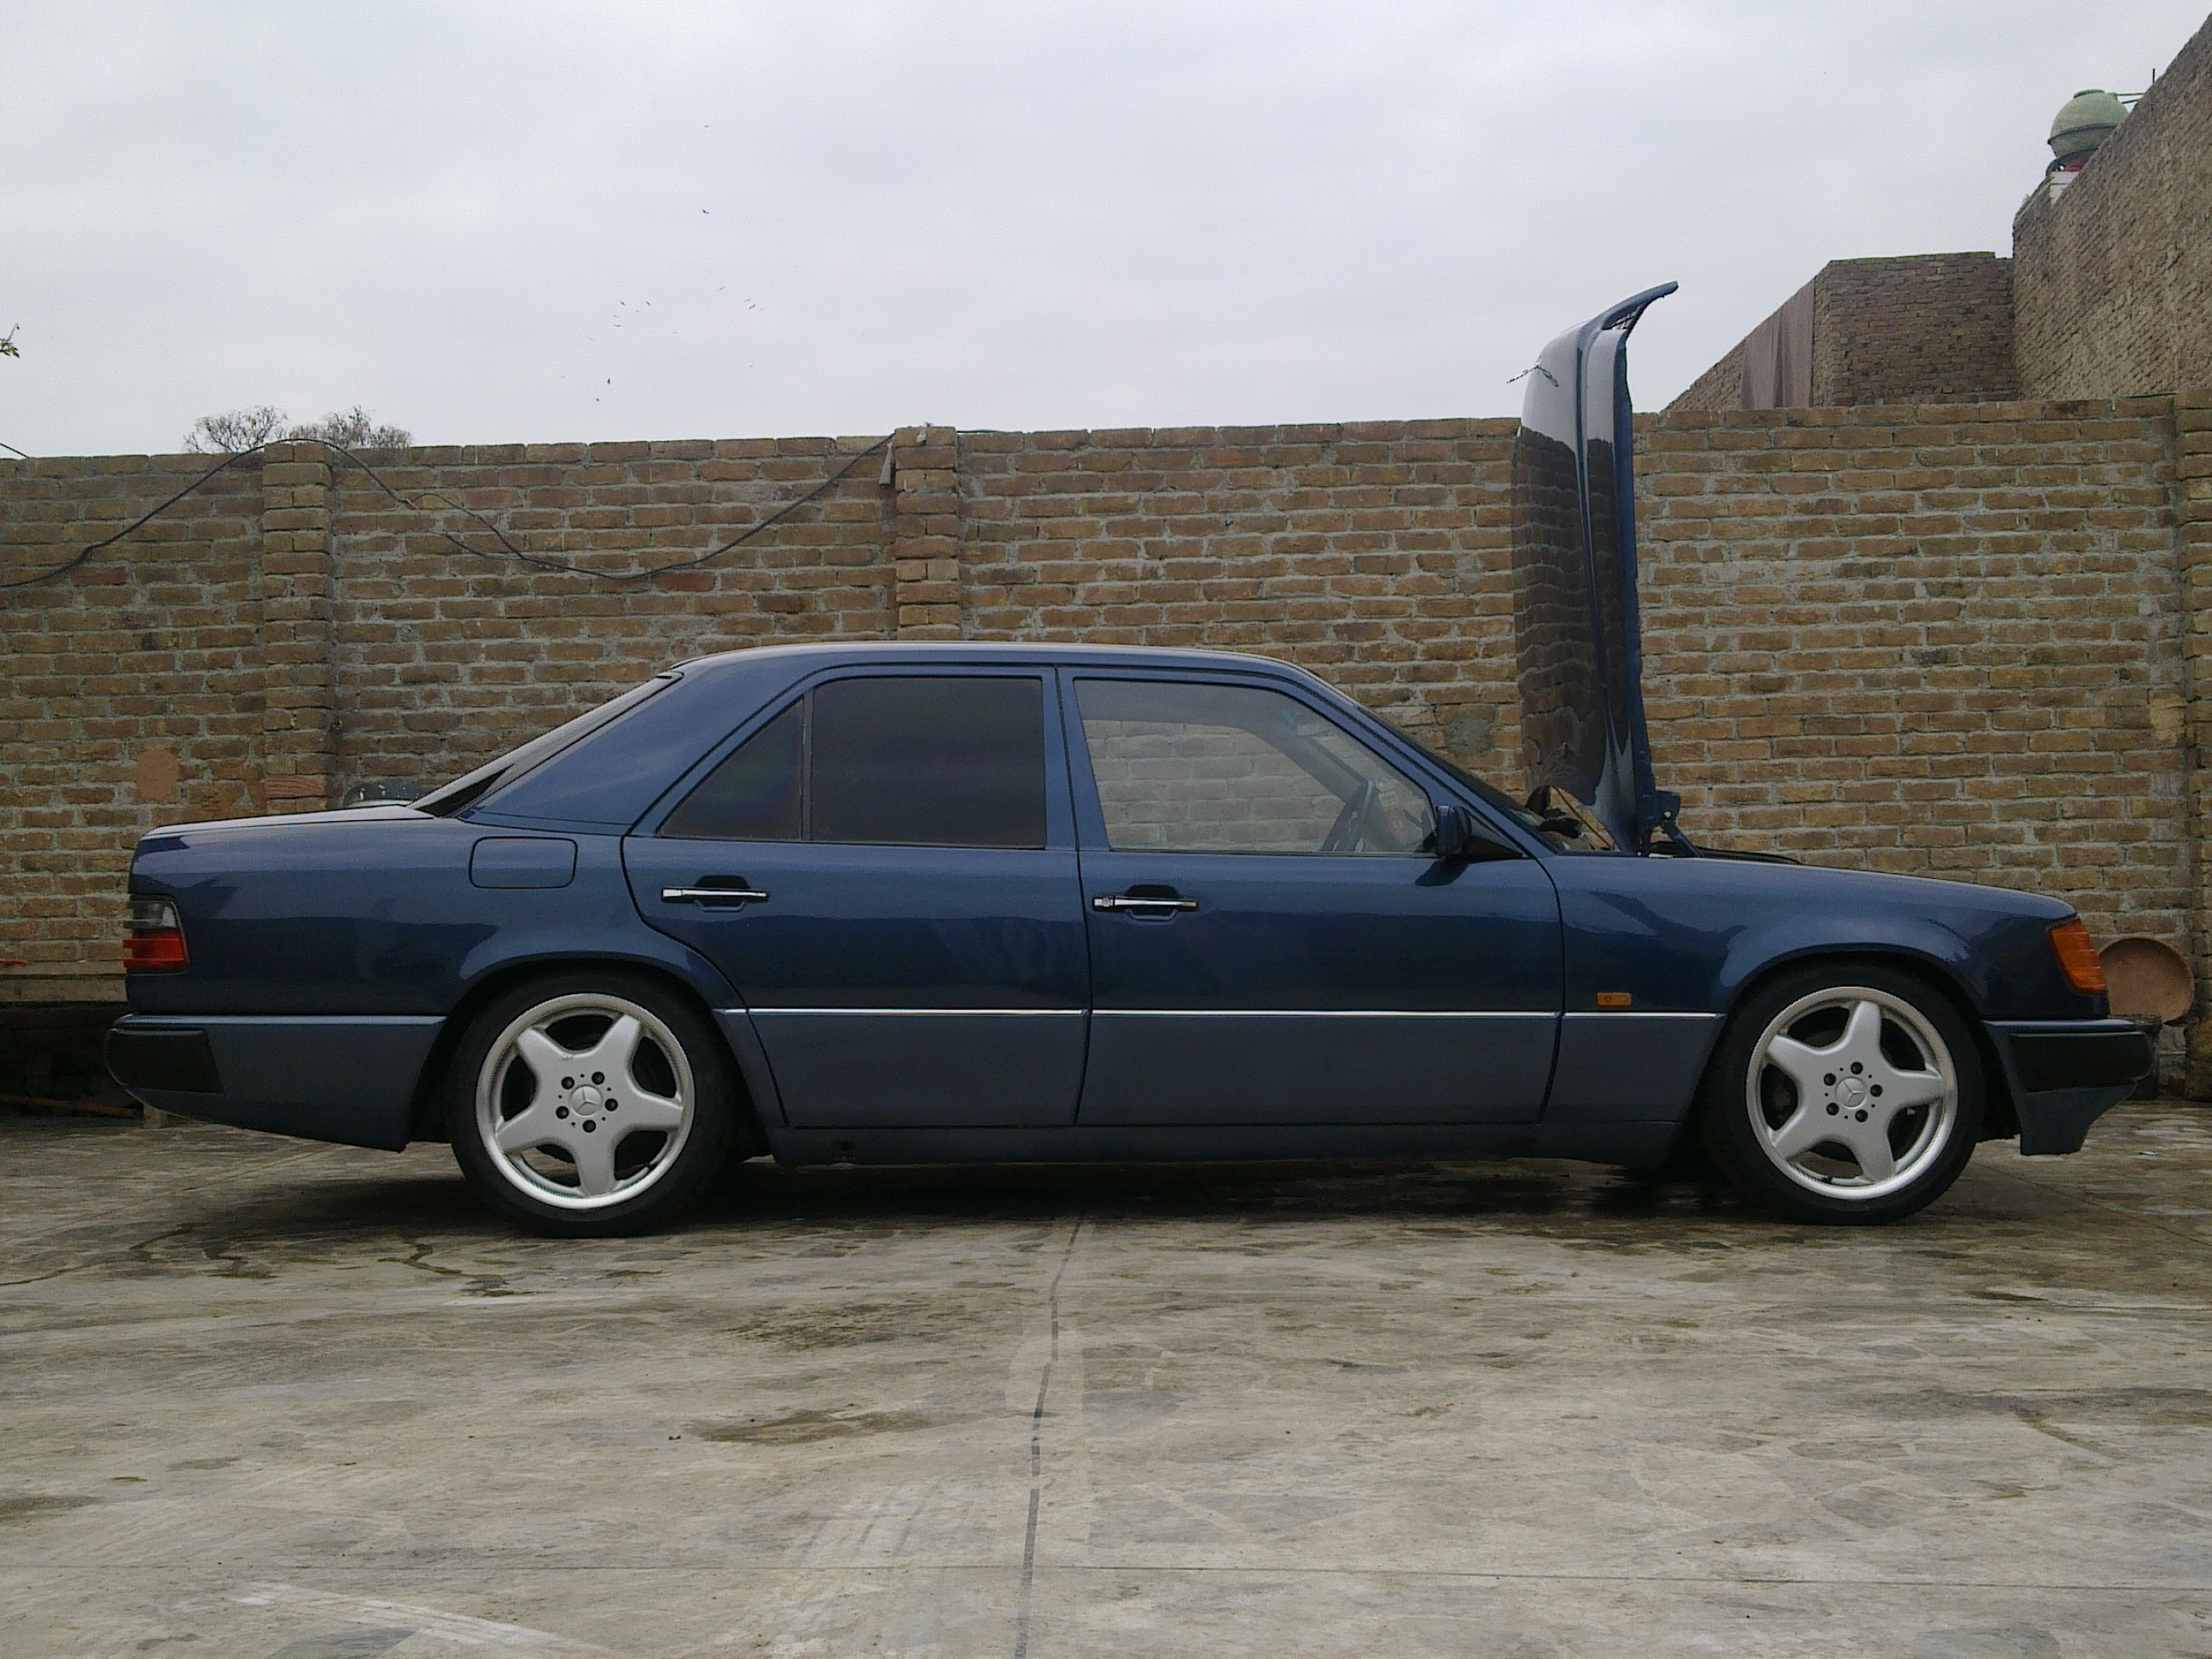 Mercedes benz e class 1988 of imran077 member ride 15234 for Mercedes benz membership